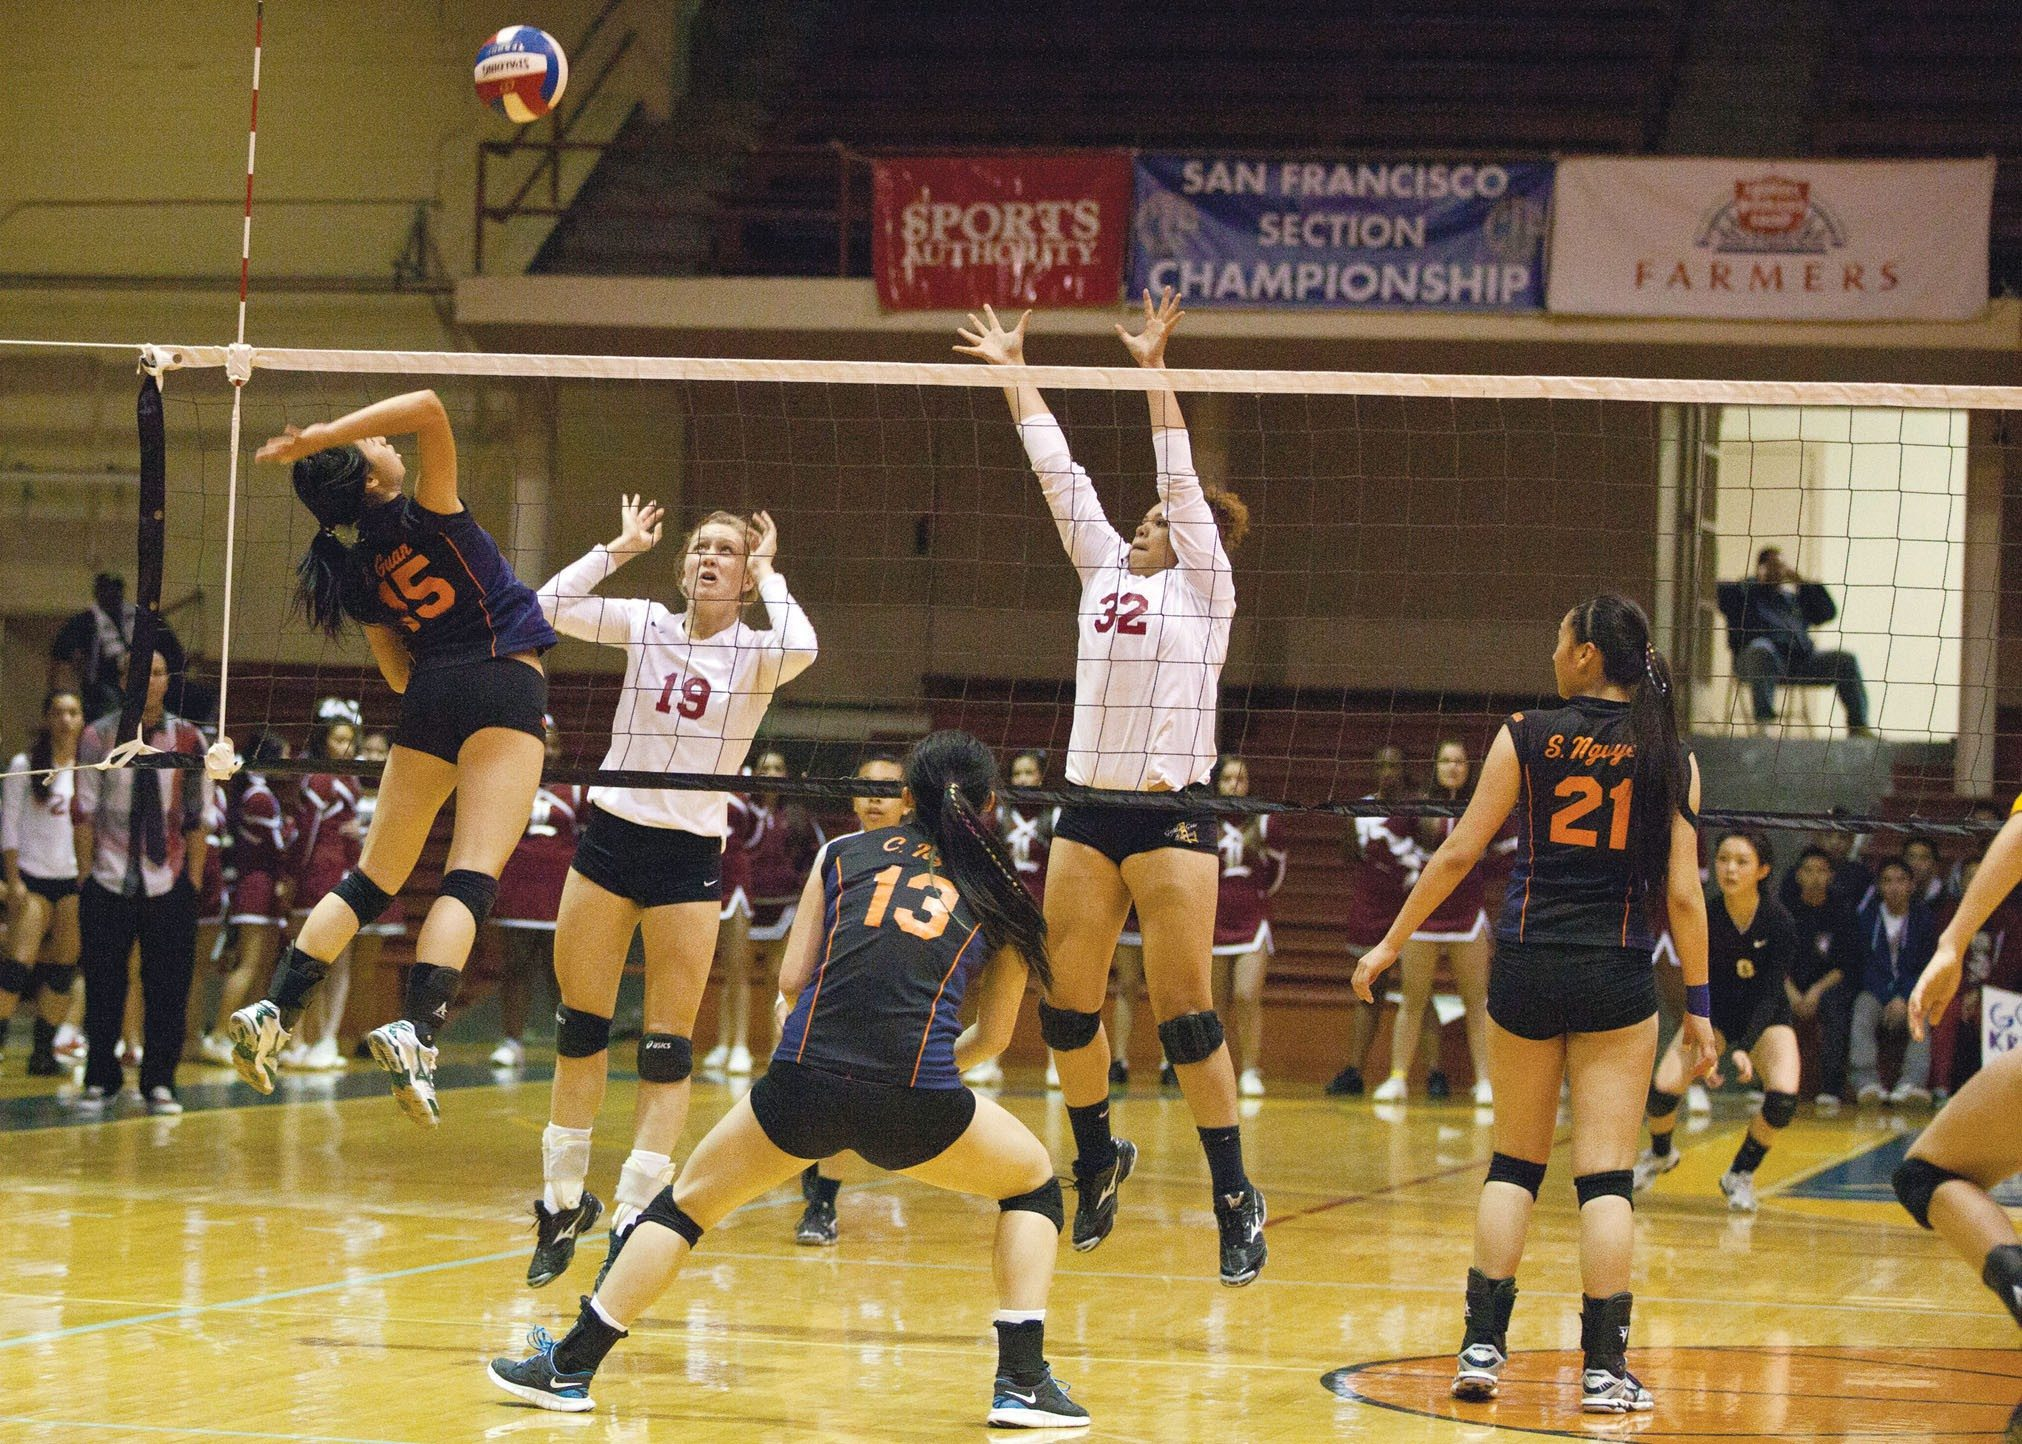 Joseph Schell/Special to The ExaminerSenior Elaine Guan goes up for a spike during Balboa's AAA championship victory against Lowell on Thursday at Kezar Pavilion.